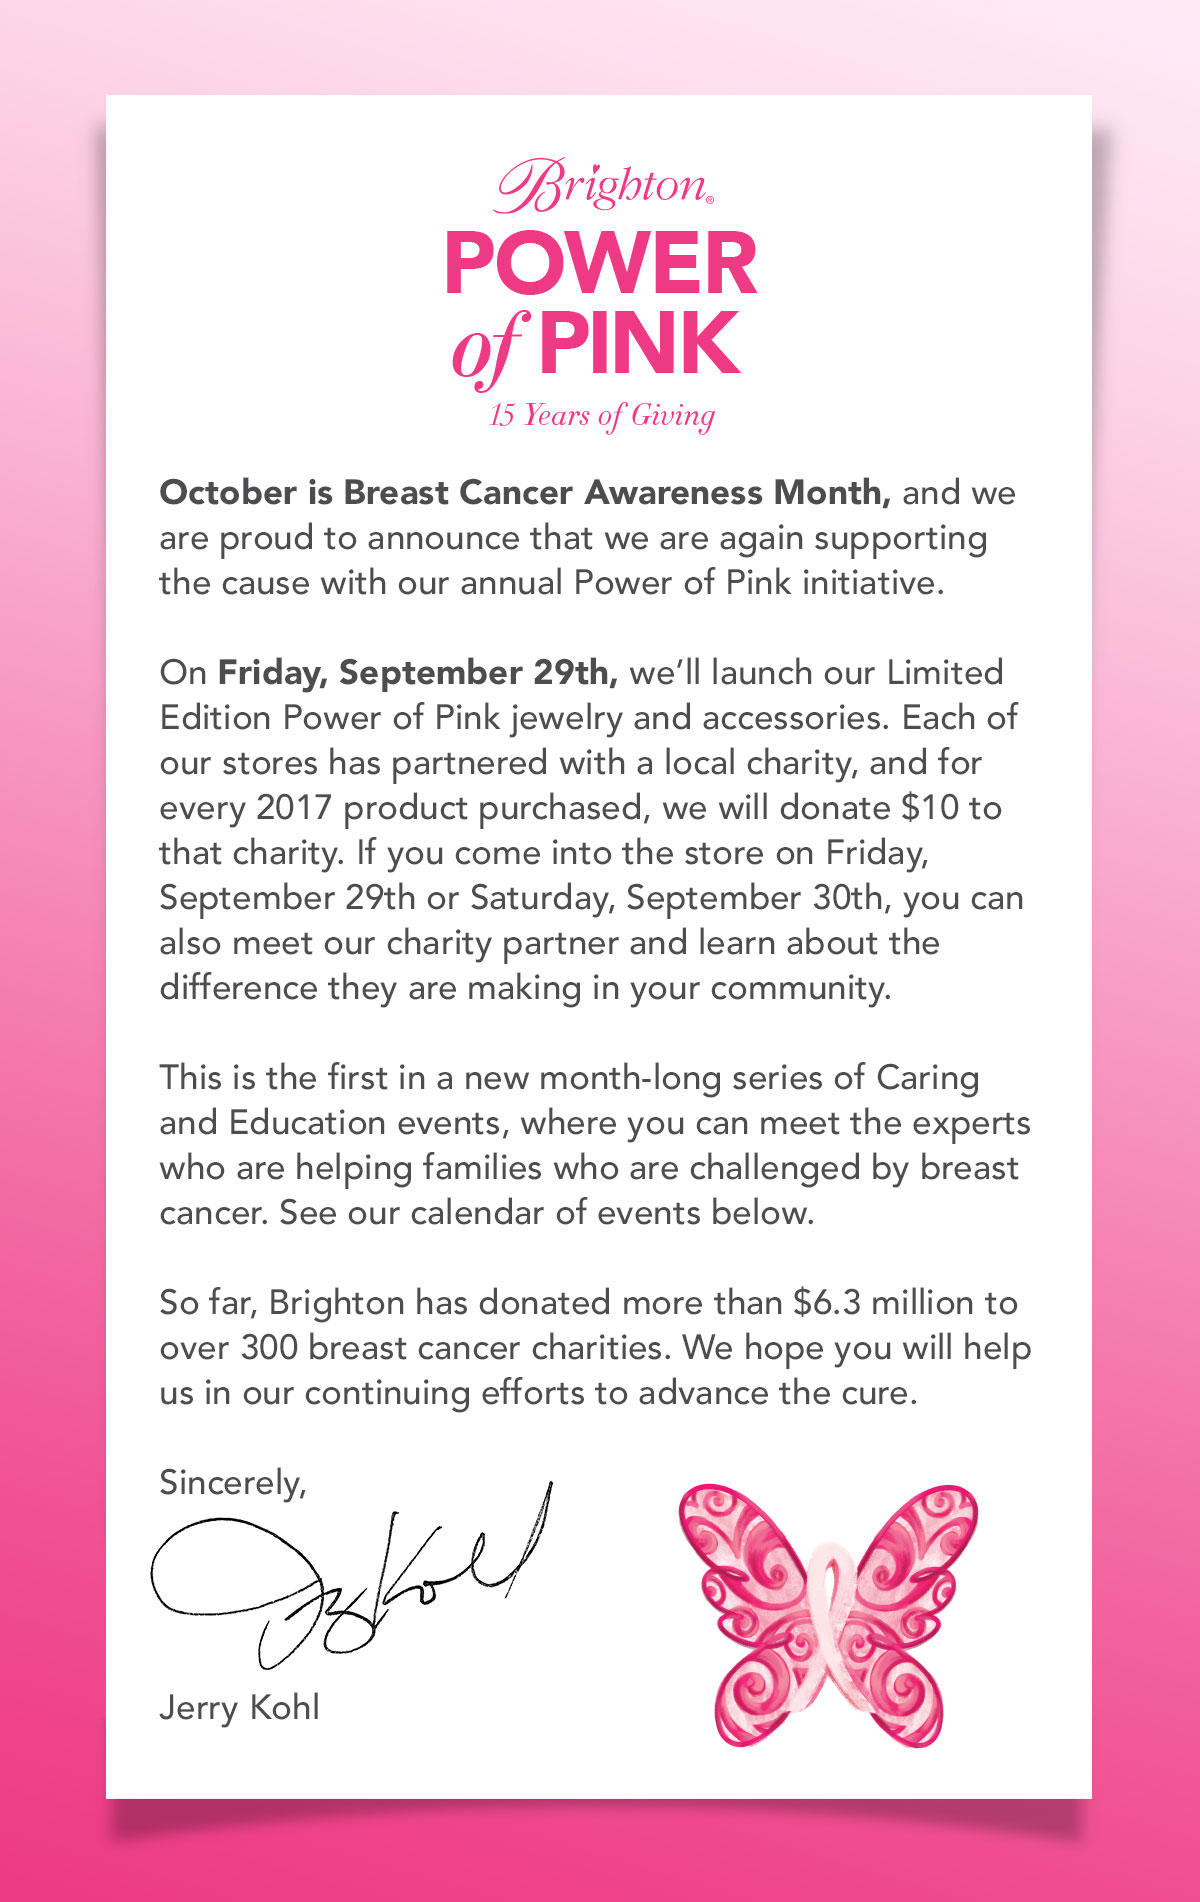 b449e6374ae Brighton Power of Pink - fifteen years of giving - October is Breast Cancer  Awareness Month